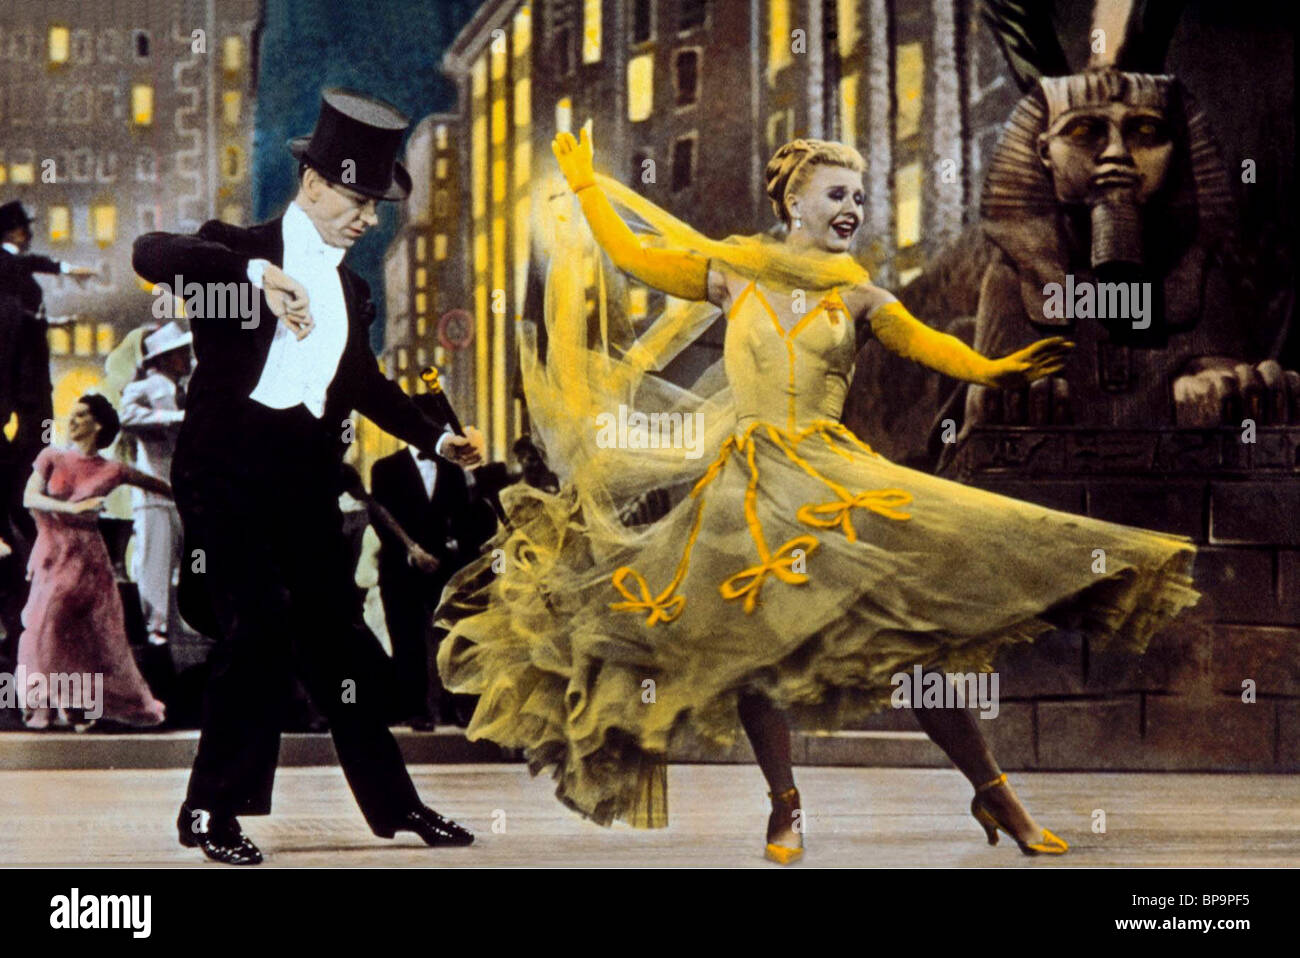 Fred Astaire Ginger Rogers The Barkleys Of Broadway 1949 Stock Photo Alamy